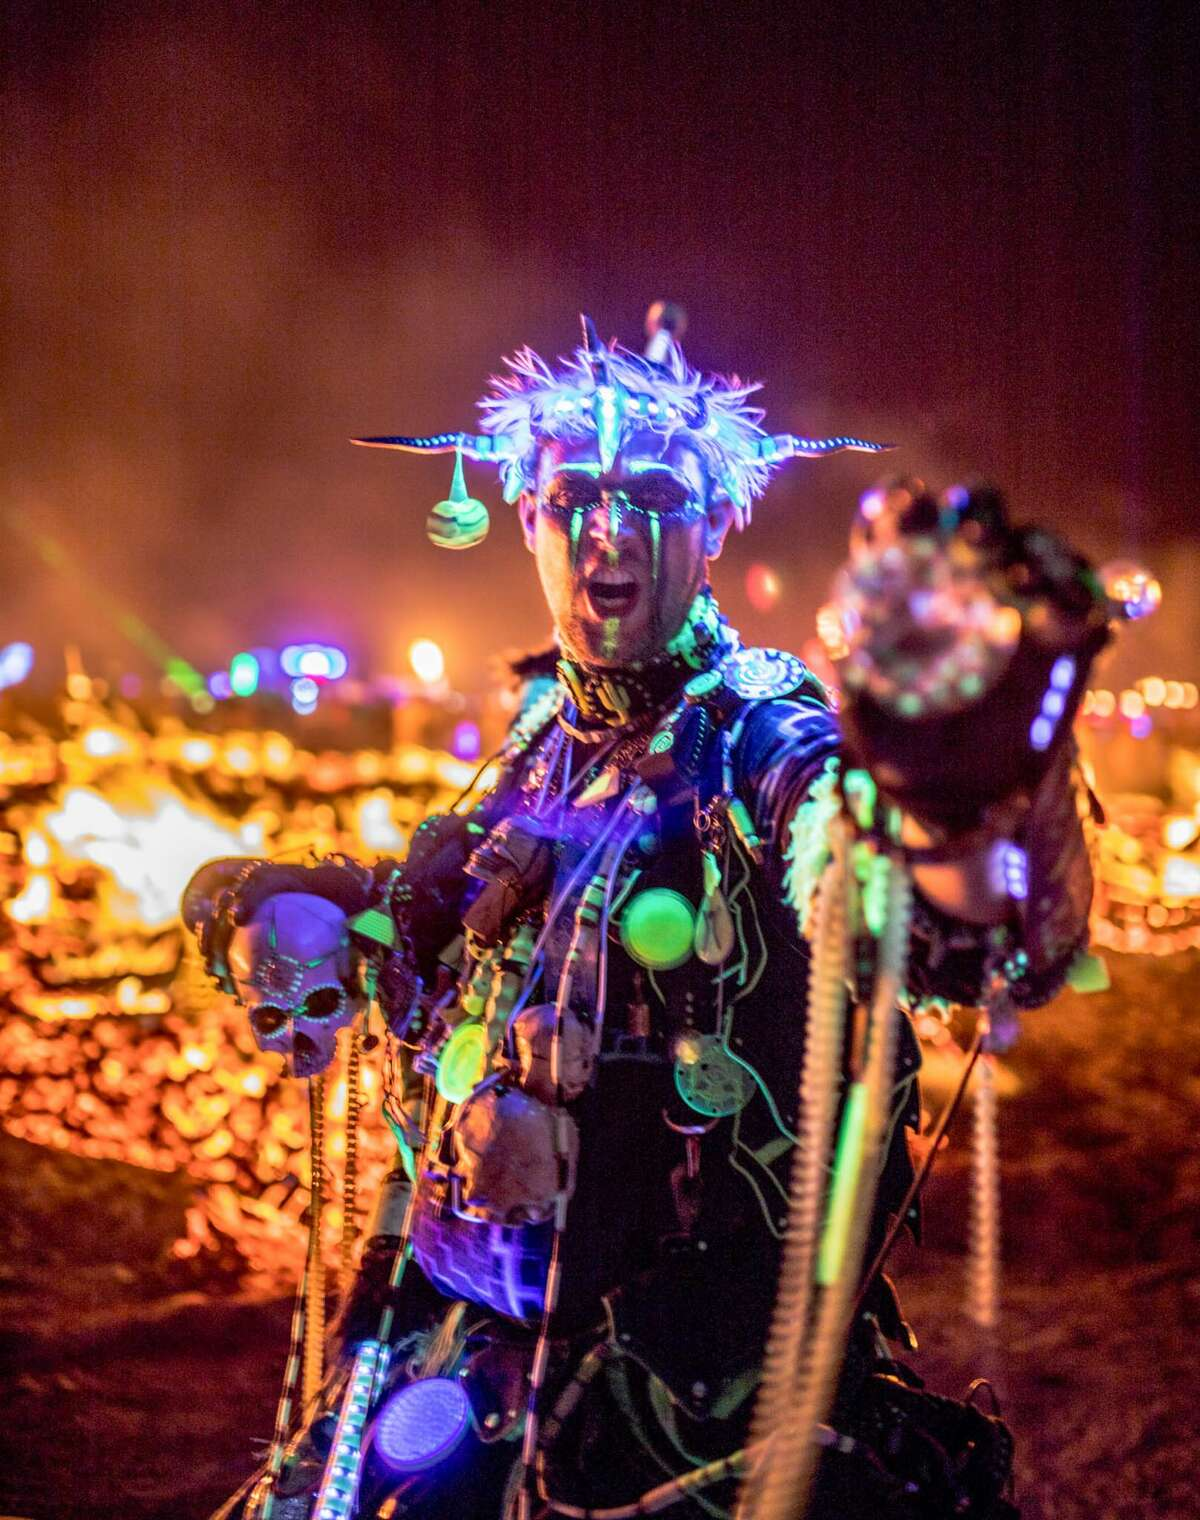 A participant at Burning Man 2018. Decompression at Black Top City in SF will be in October 2018.